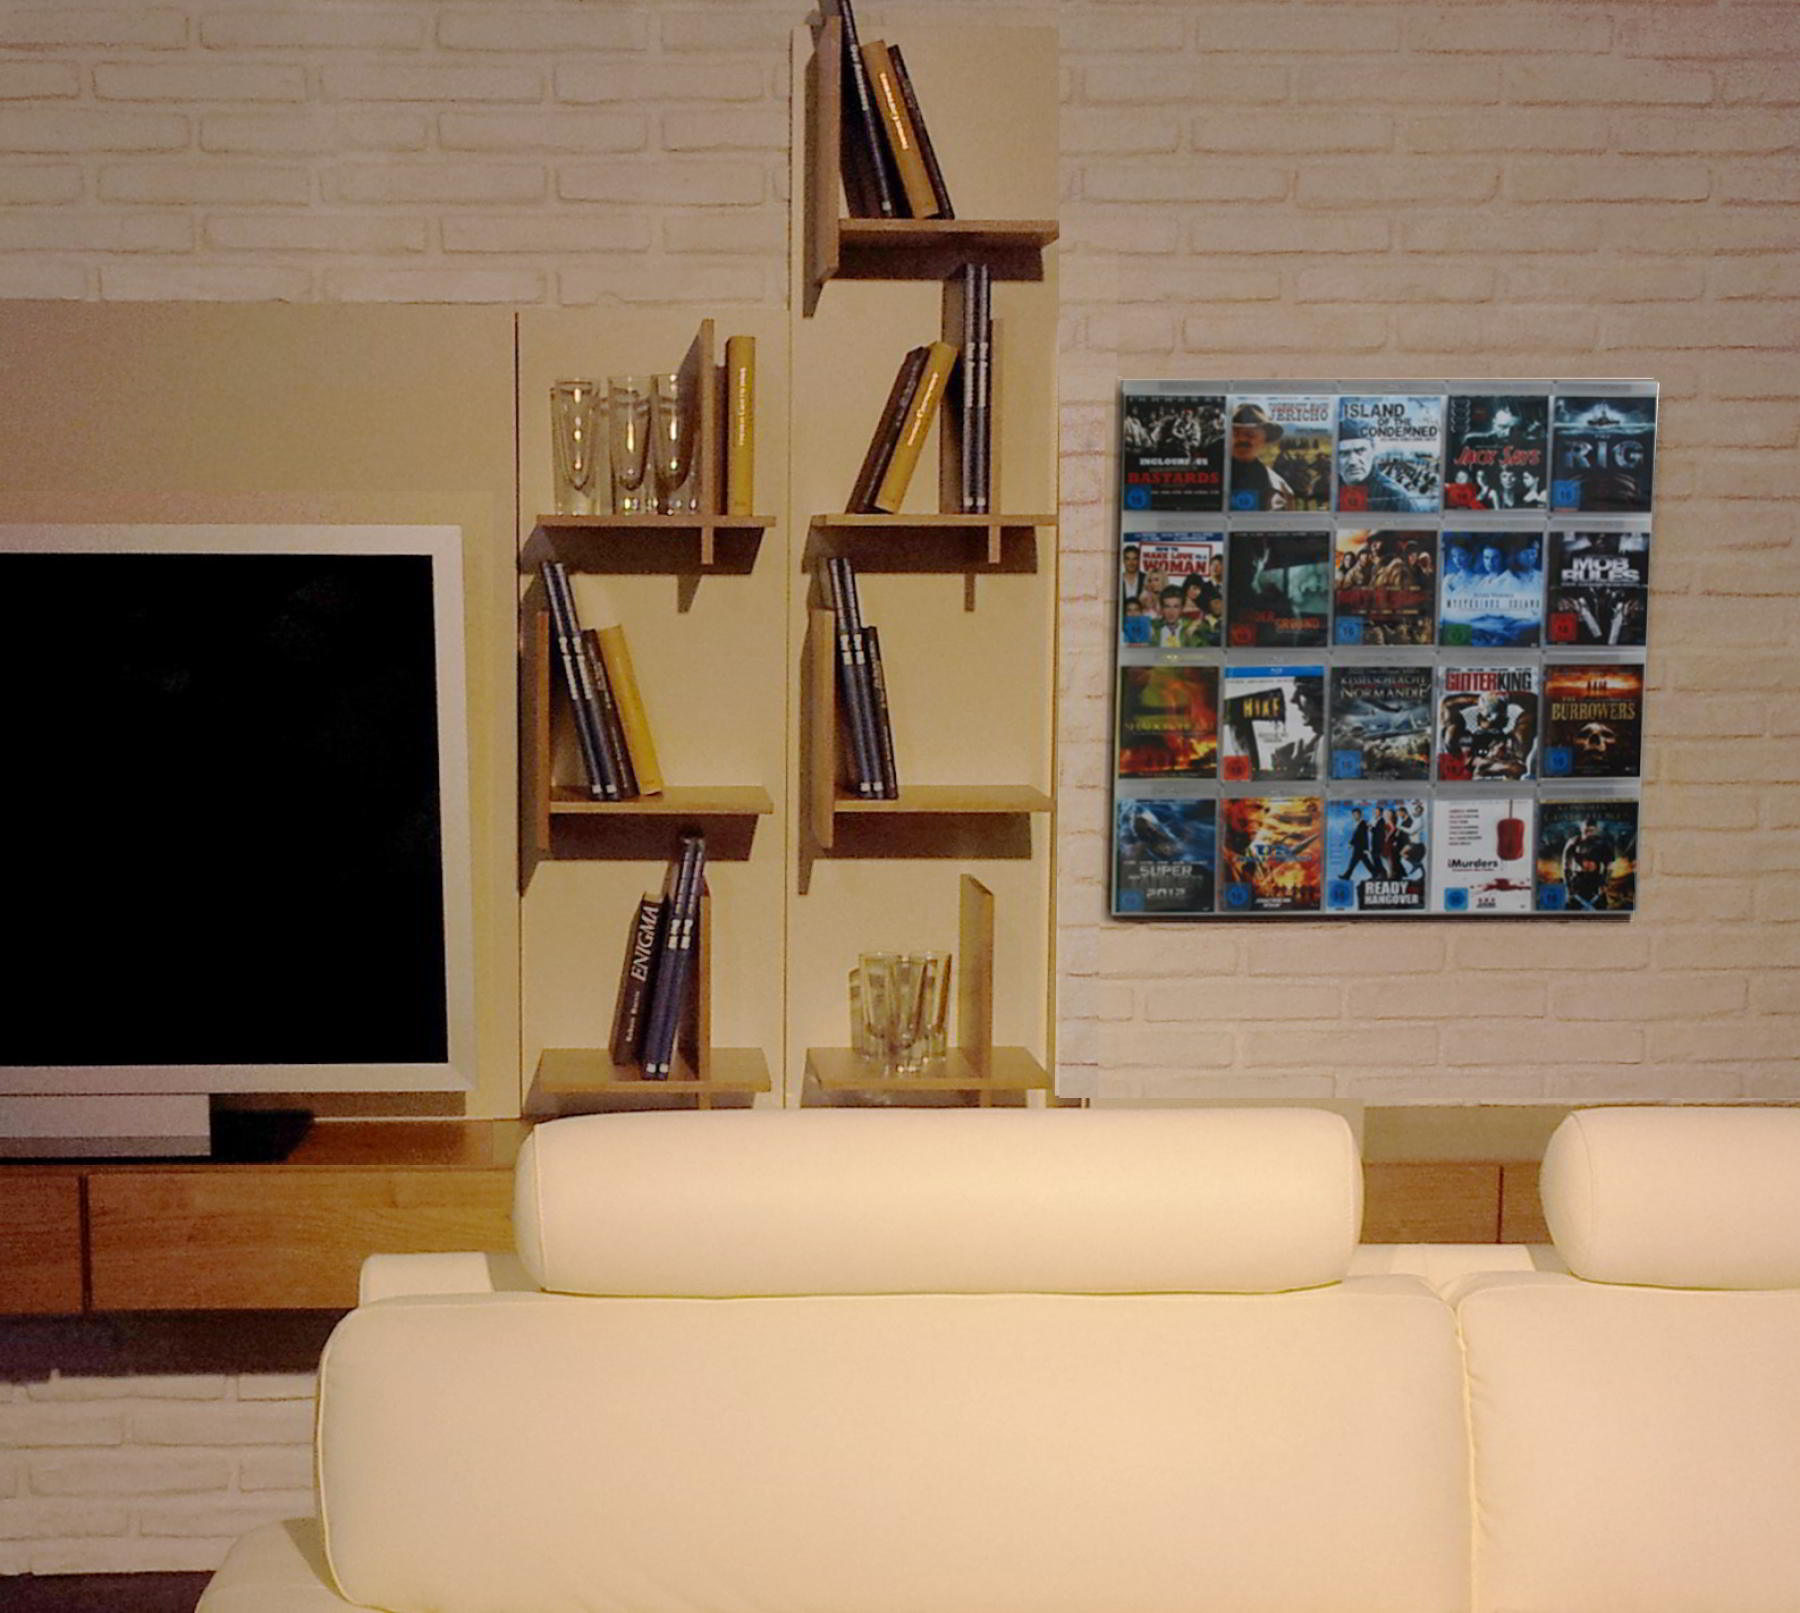 The picture shows our Wall5x4 DVD wall shelf in the living room next to the flat screen mounted